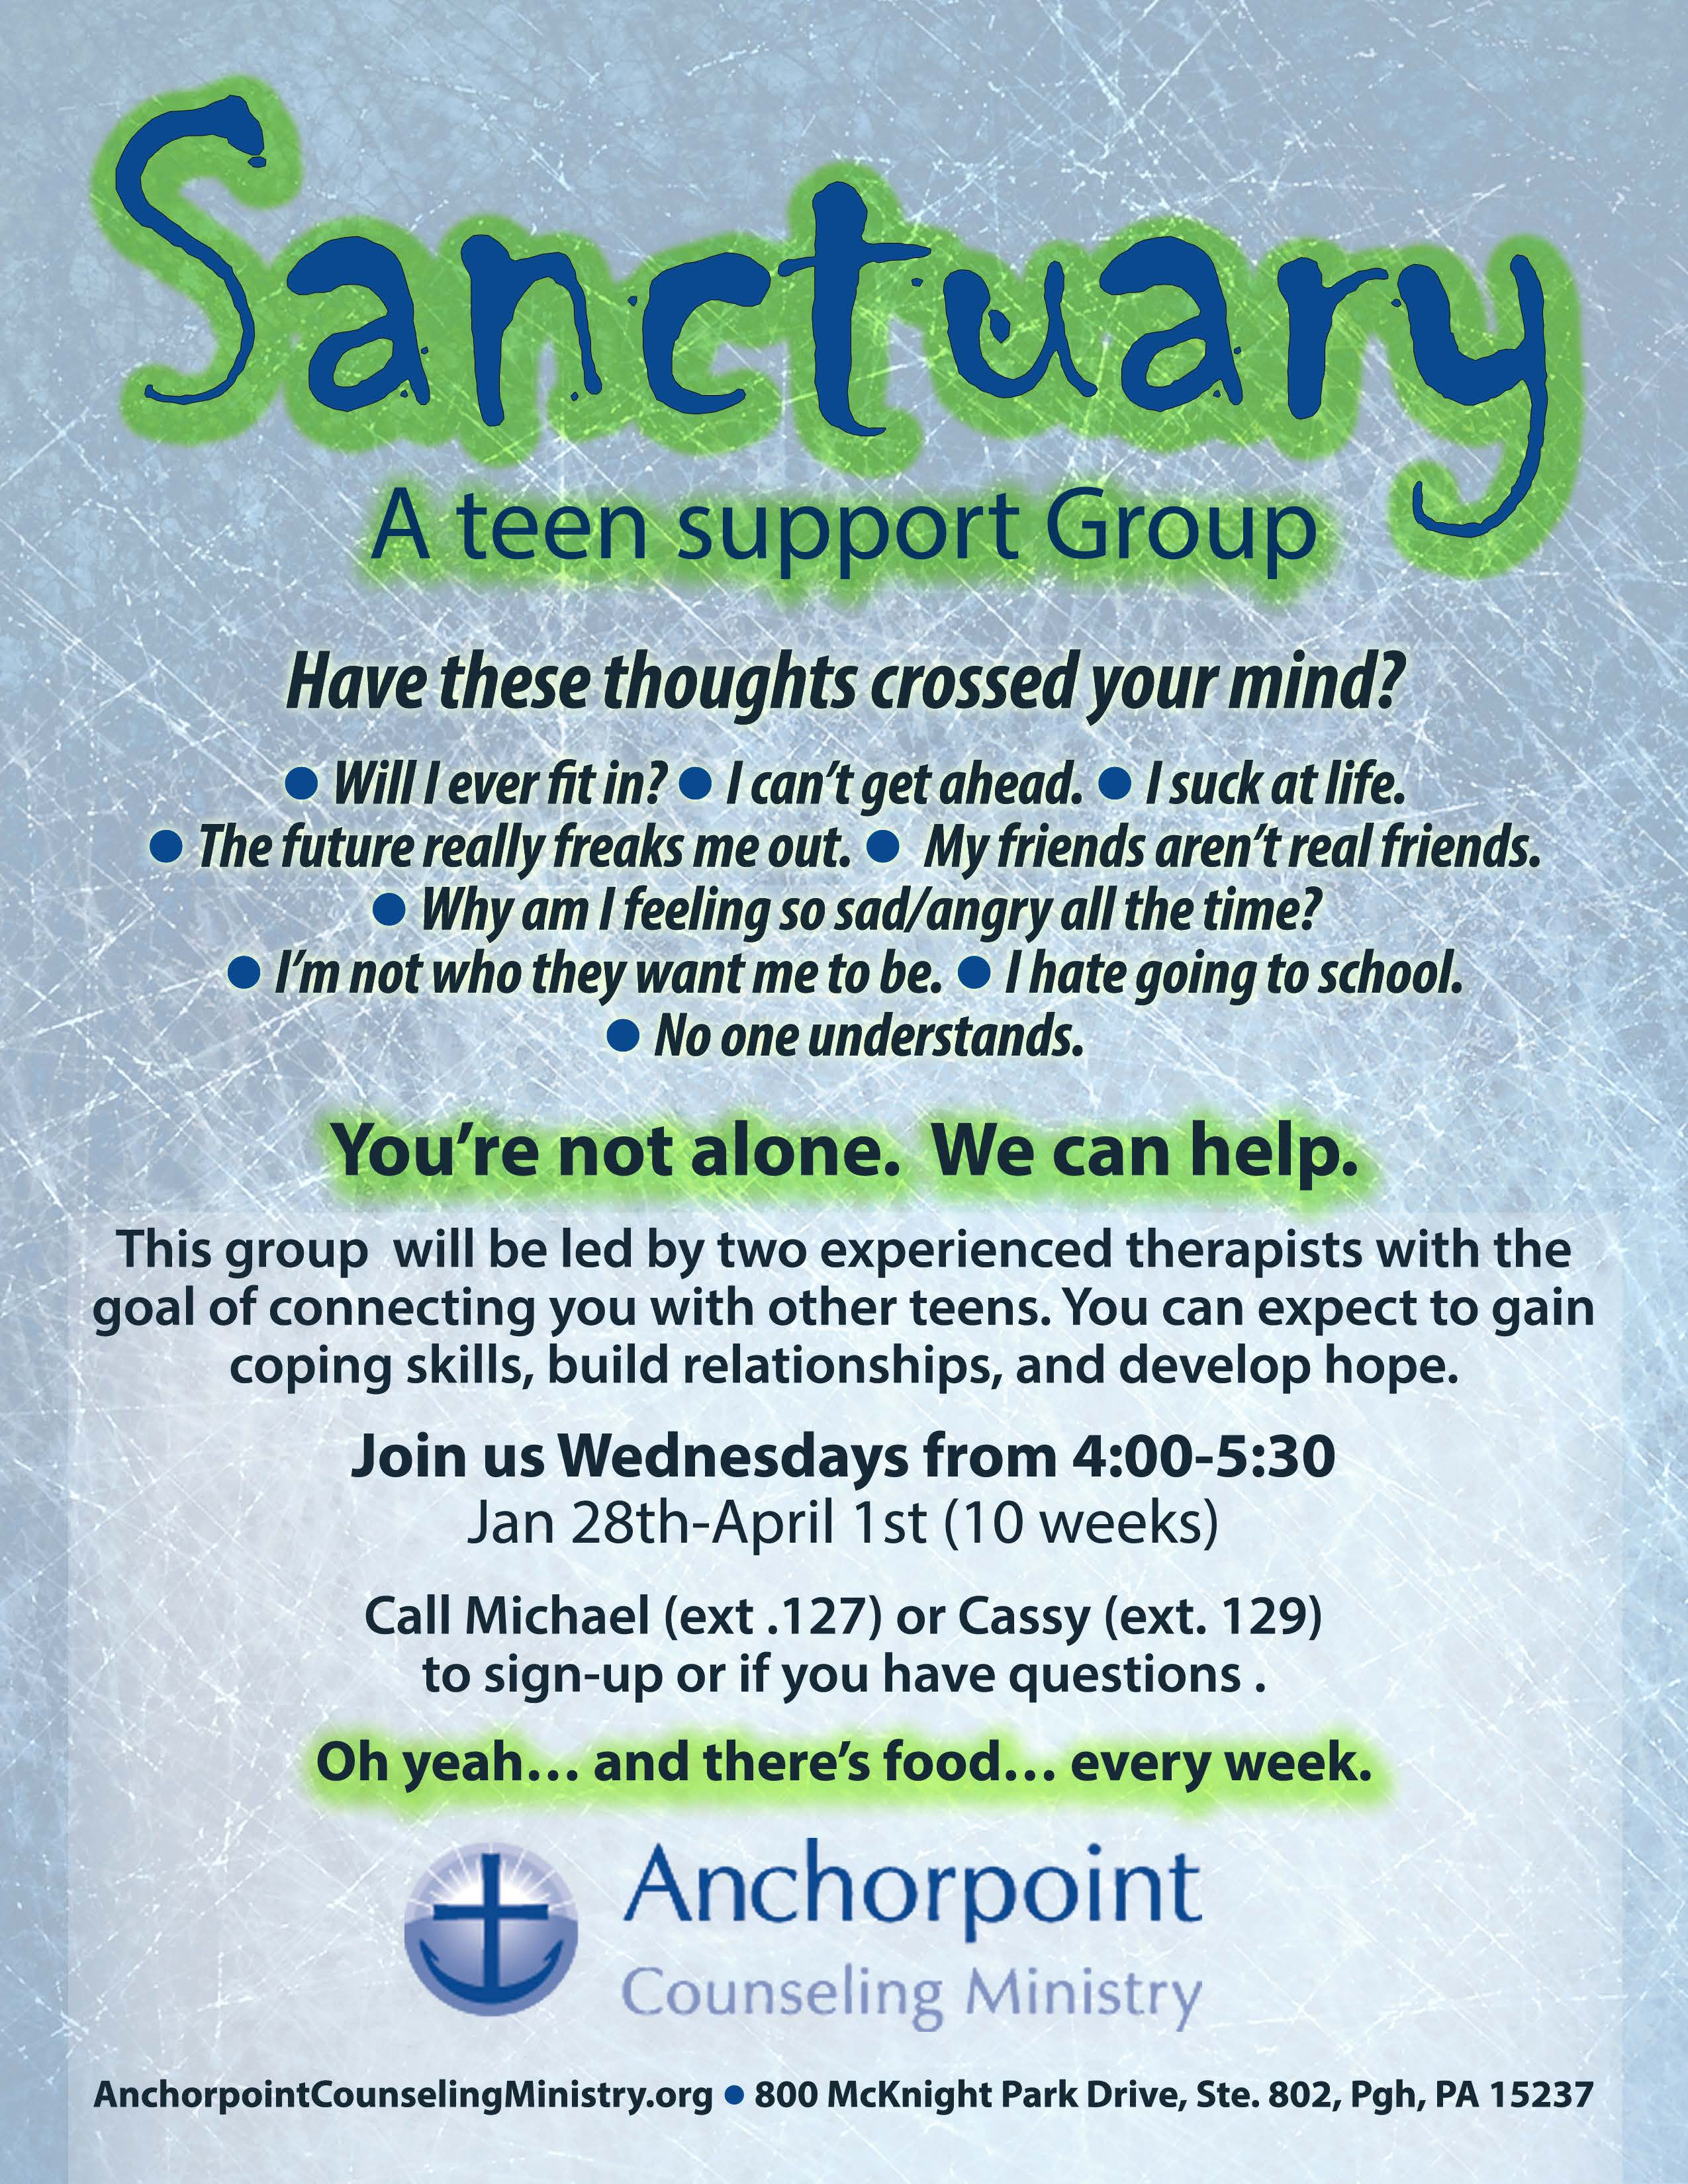 Sanctuary A Support Group For Teens